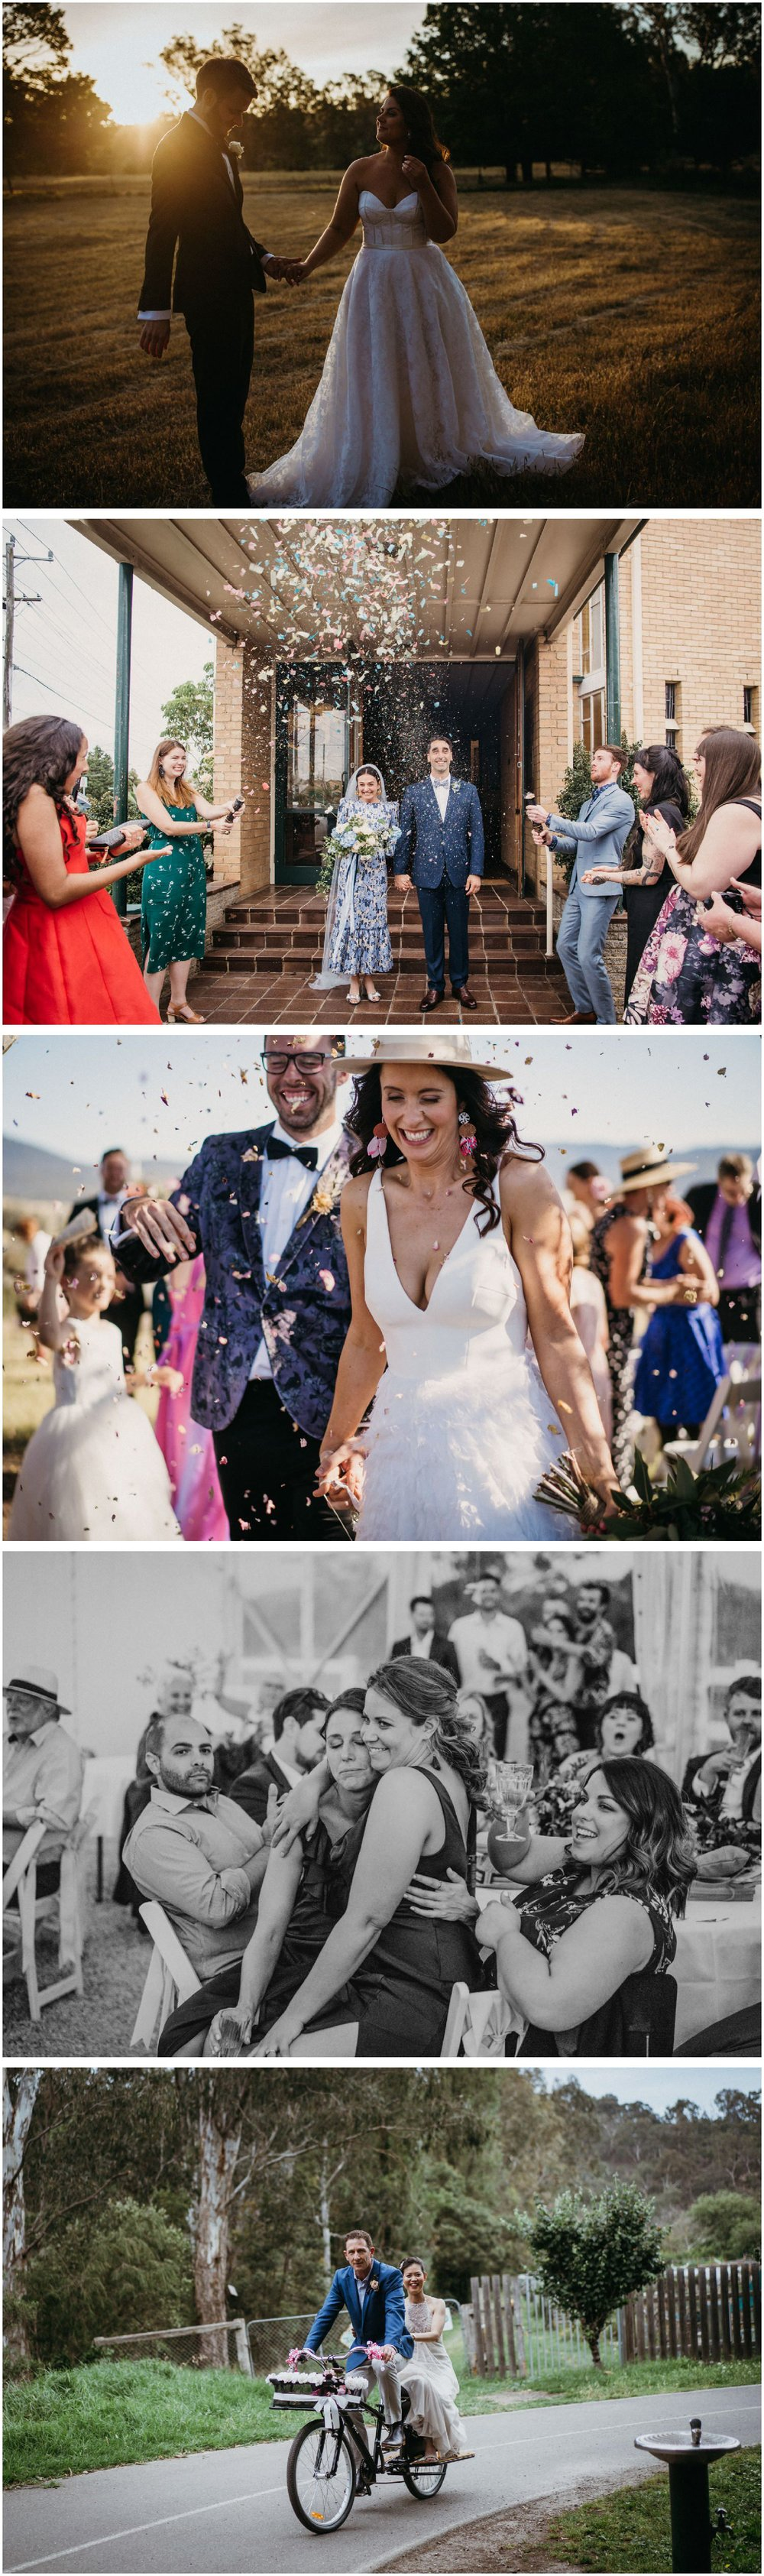 Melbourne Wedding Photographer - 2018 in review -766A6486.jpg